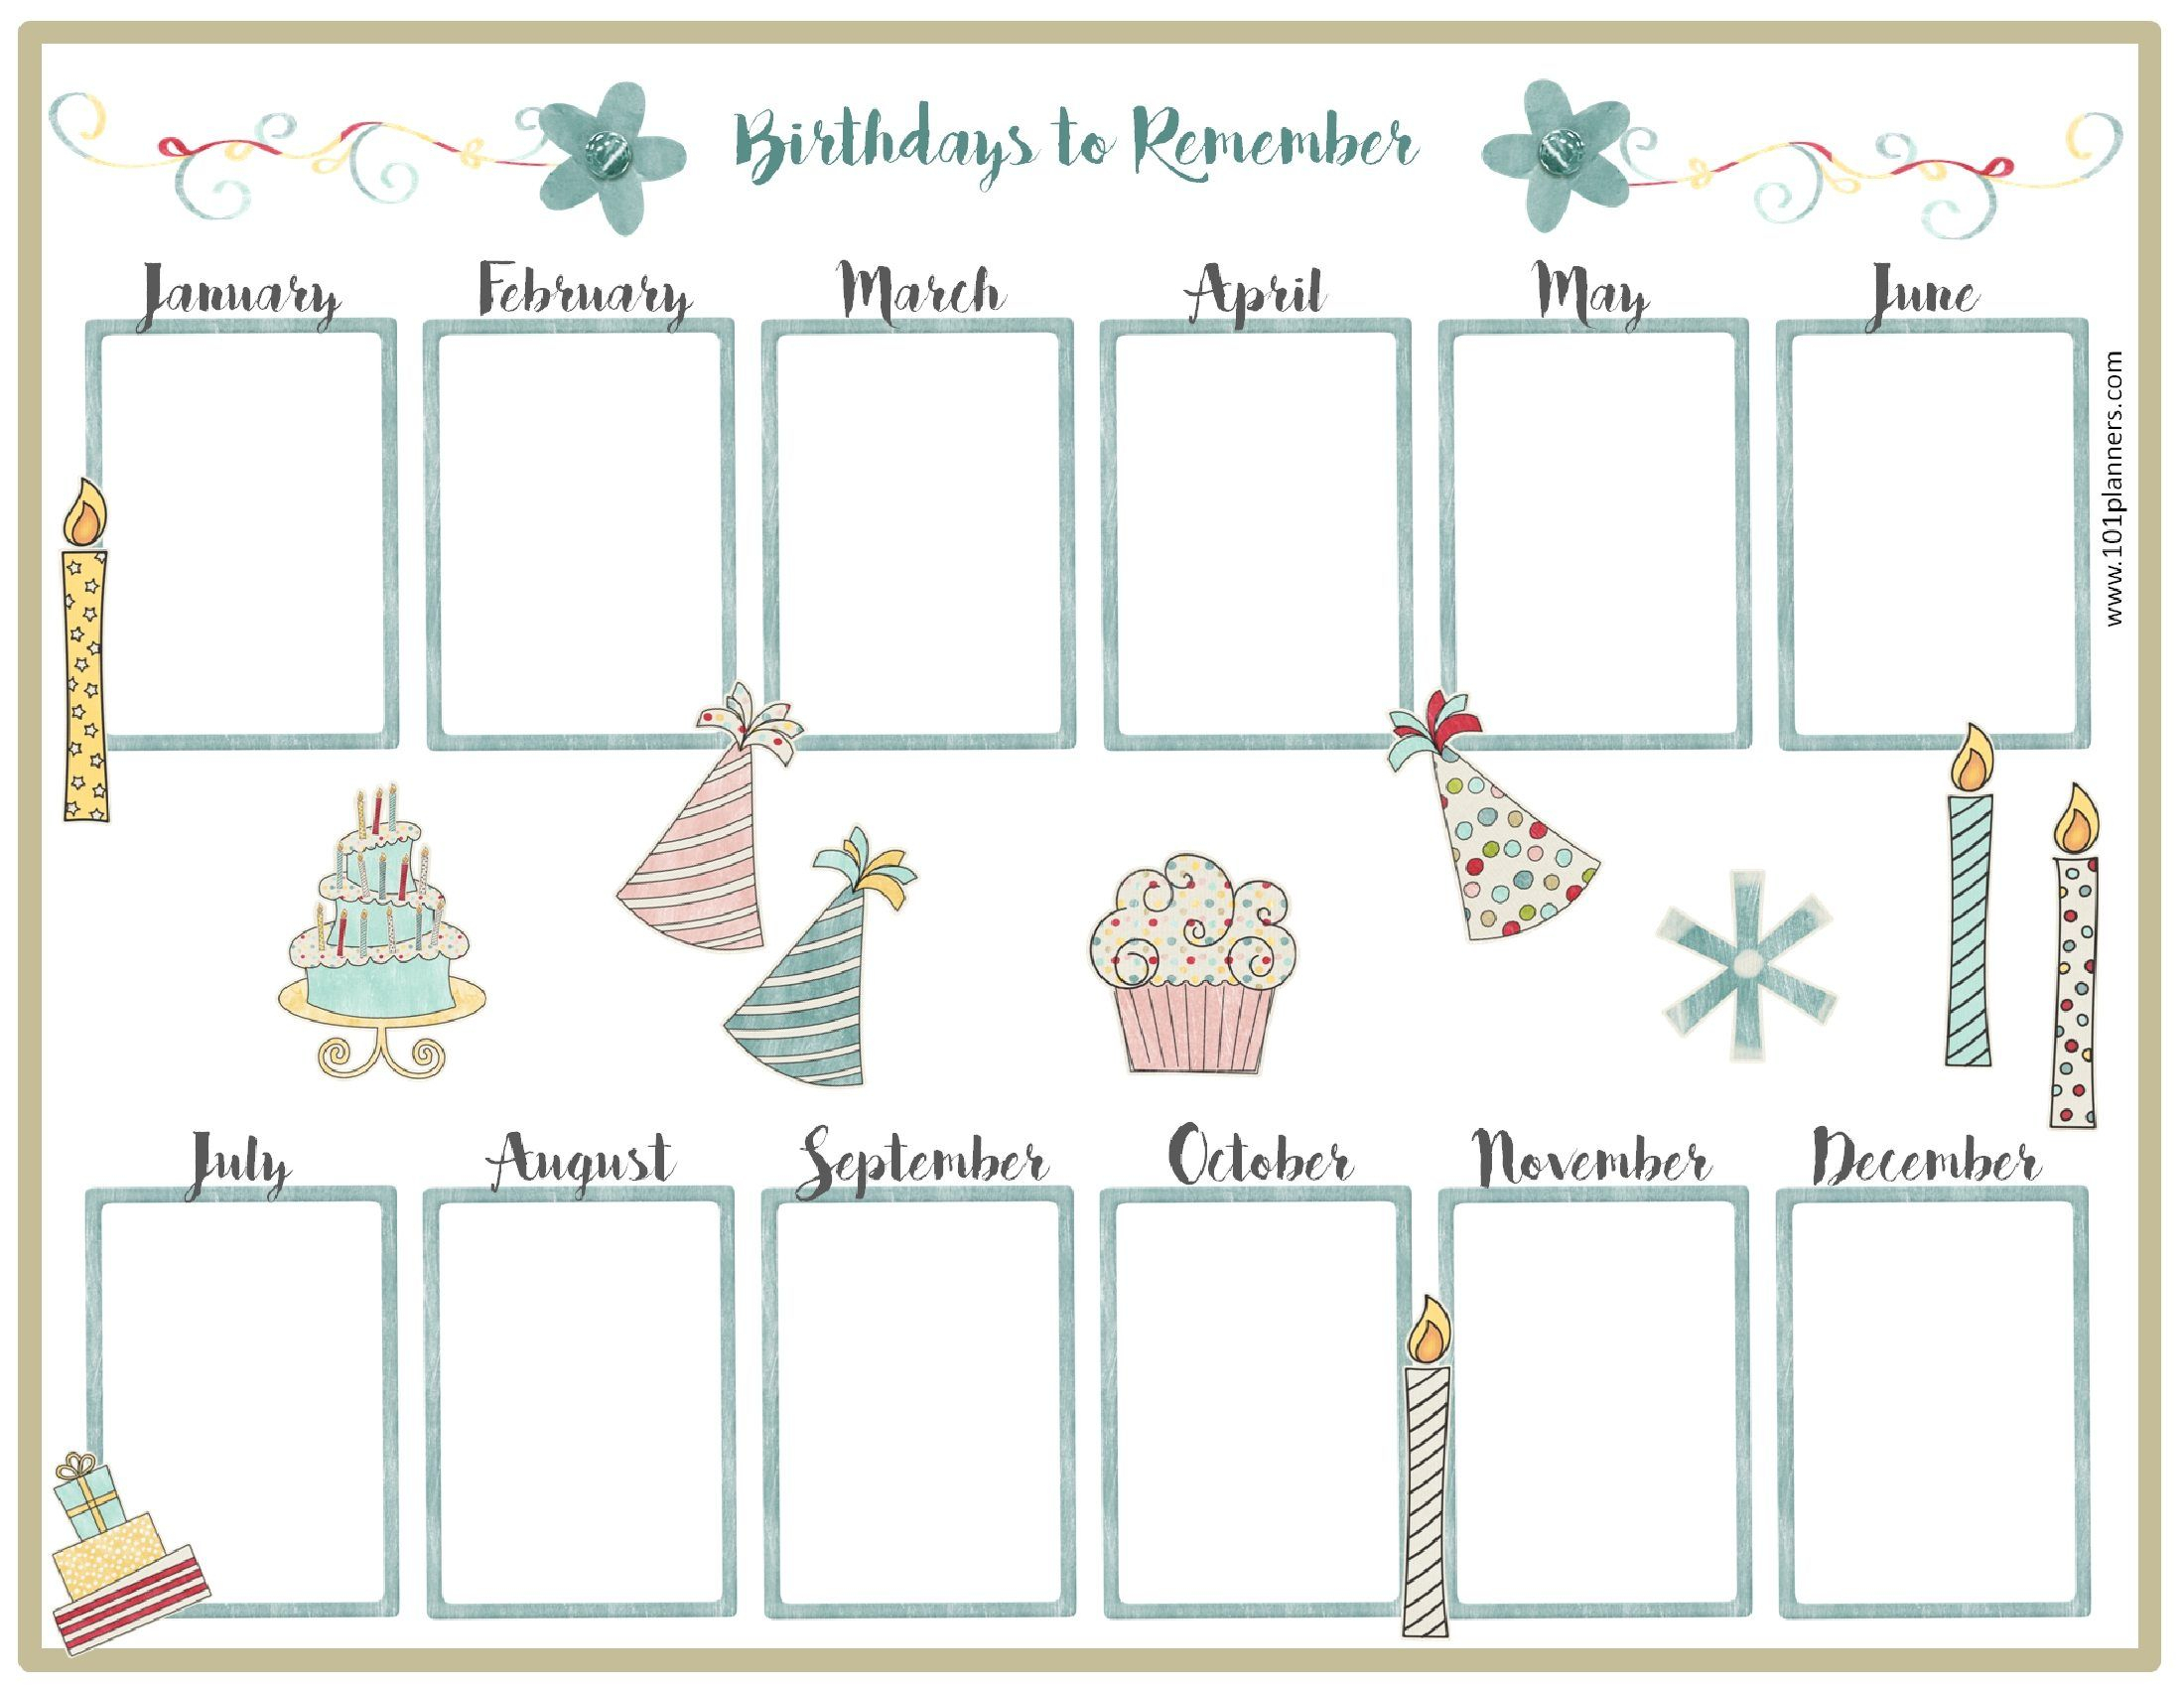 Free Birthday Calendar That Is Customizable | Birthday Calendar with Edited Birthday Calendar Template